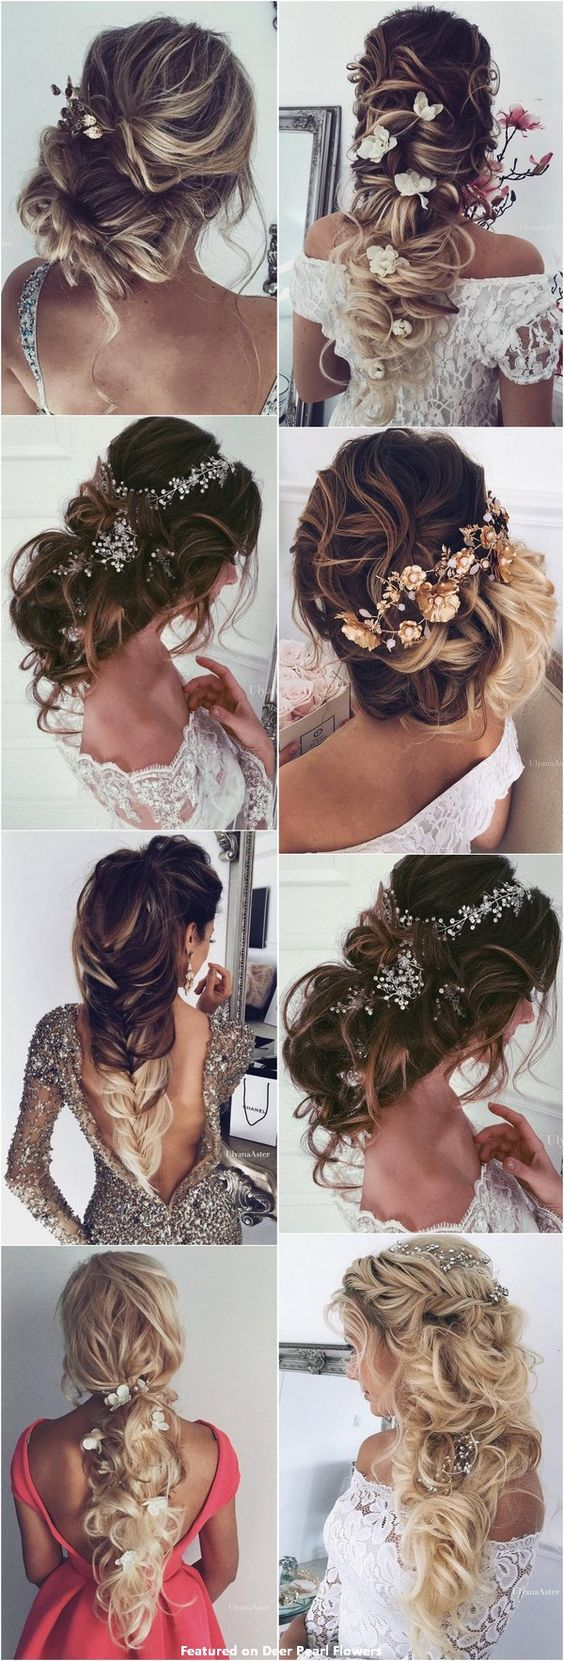 65 New Romantic Long Bridal Wedding Hairstyles to Try / Ulyana Aster www.ulyanaaster.com